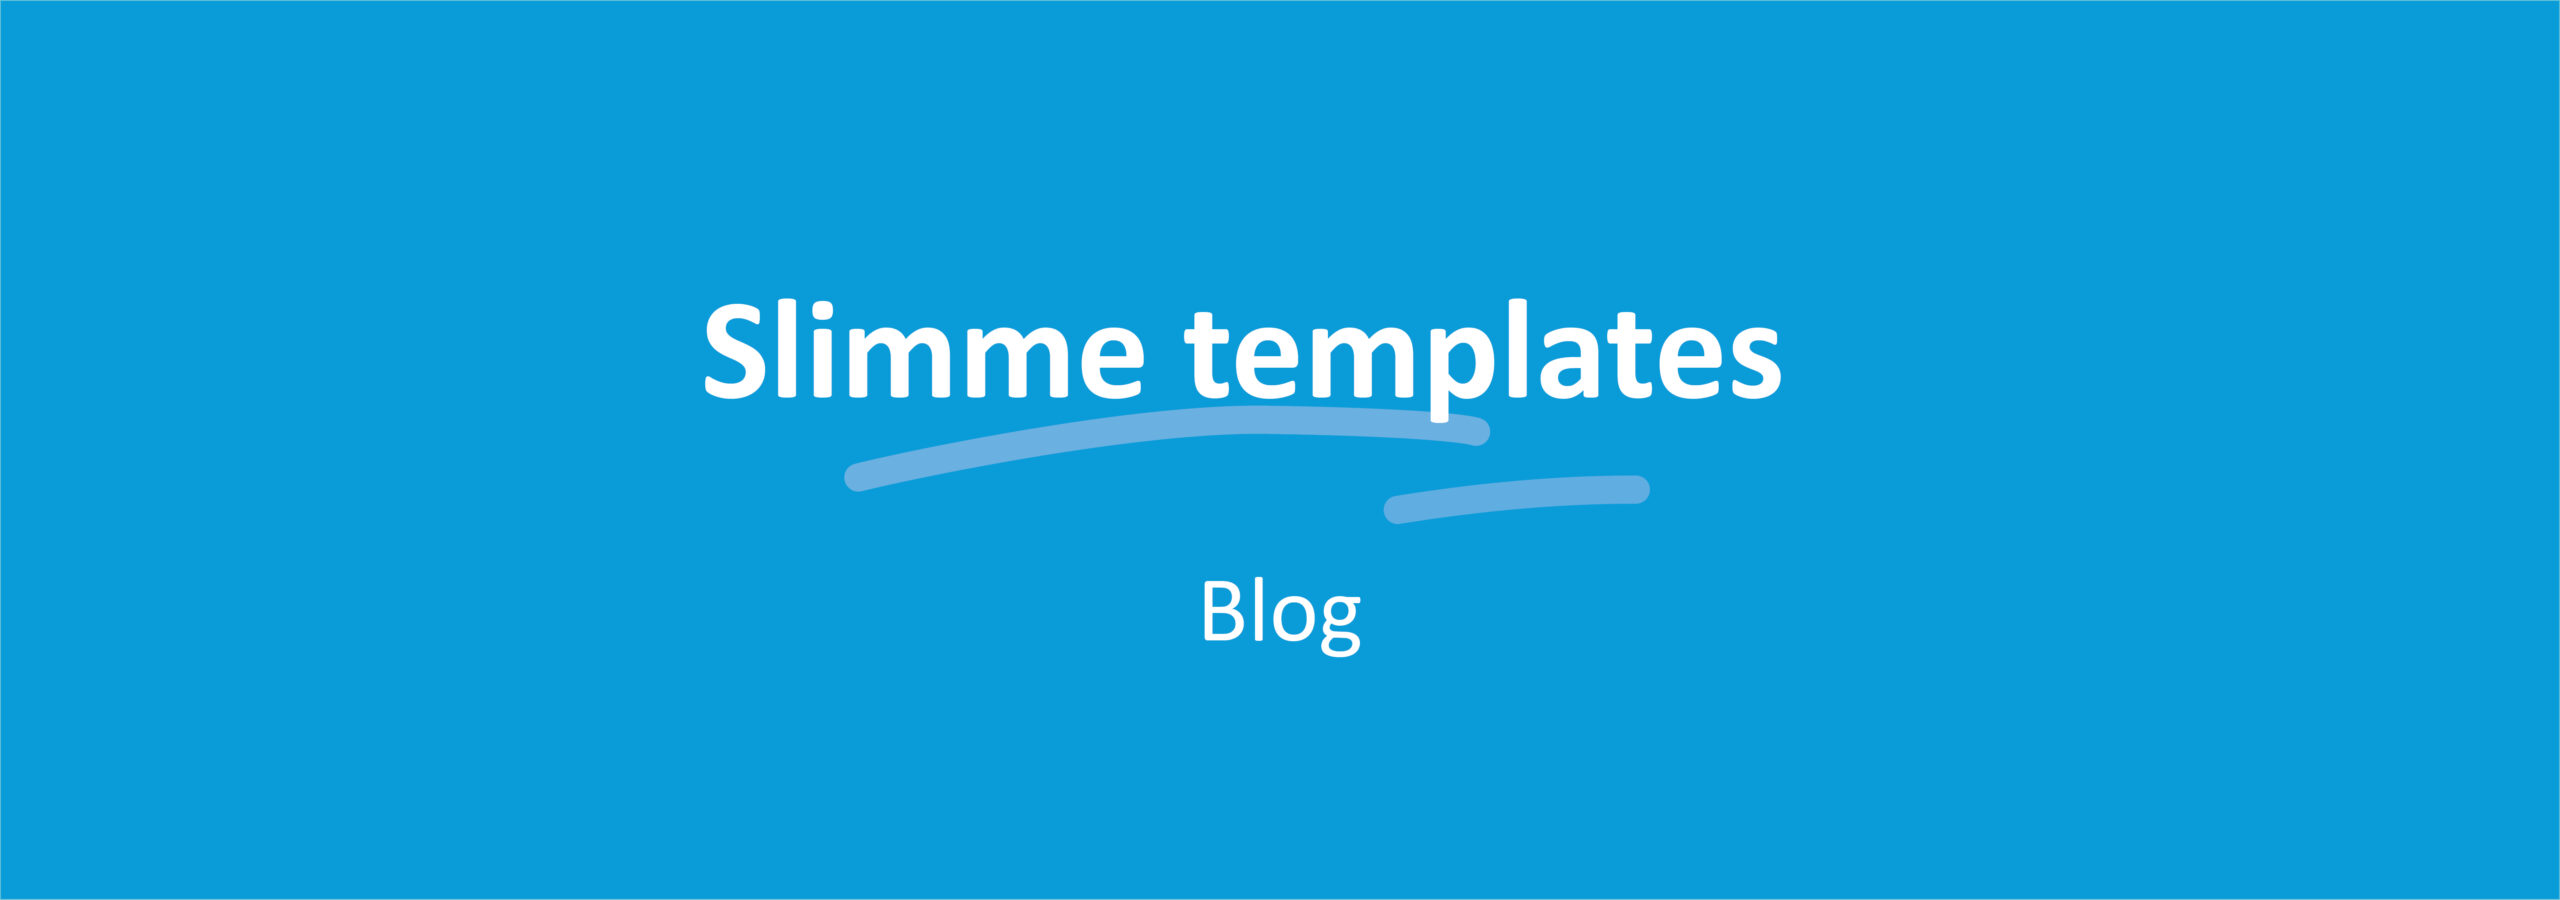 Slimme Templates